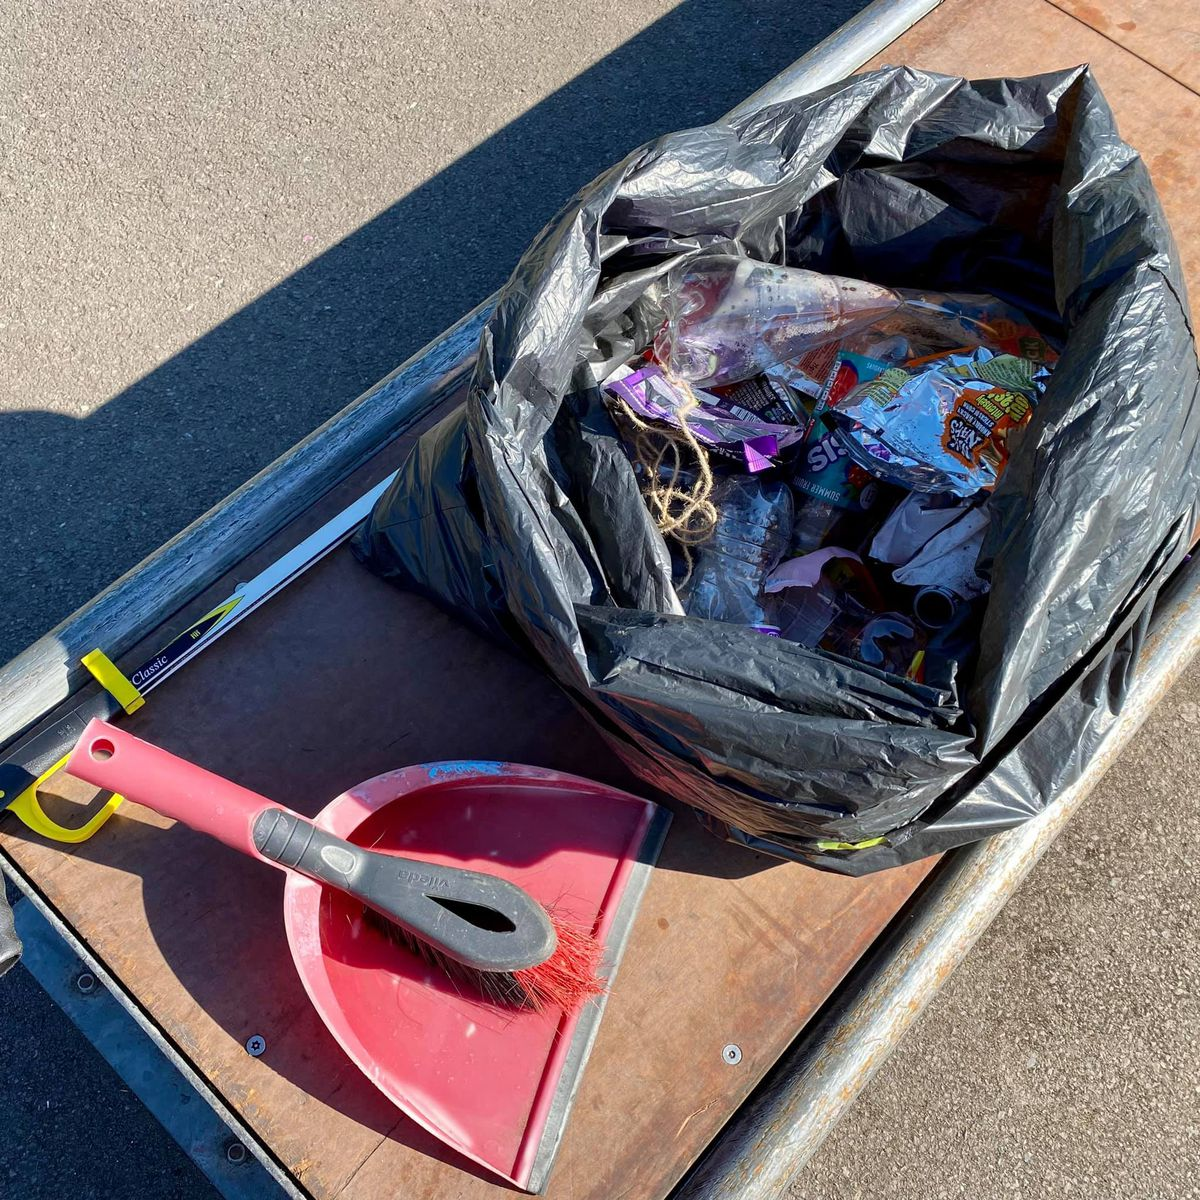 Some of the litter collected at Norbroom Park. Photo: Councillor Thomas Janke